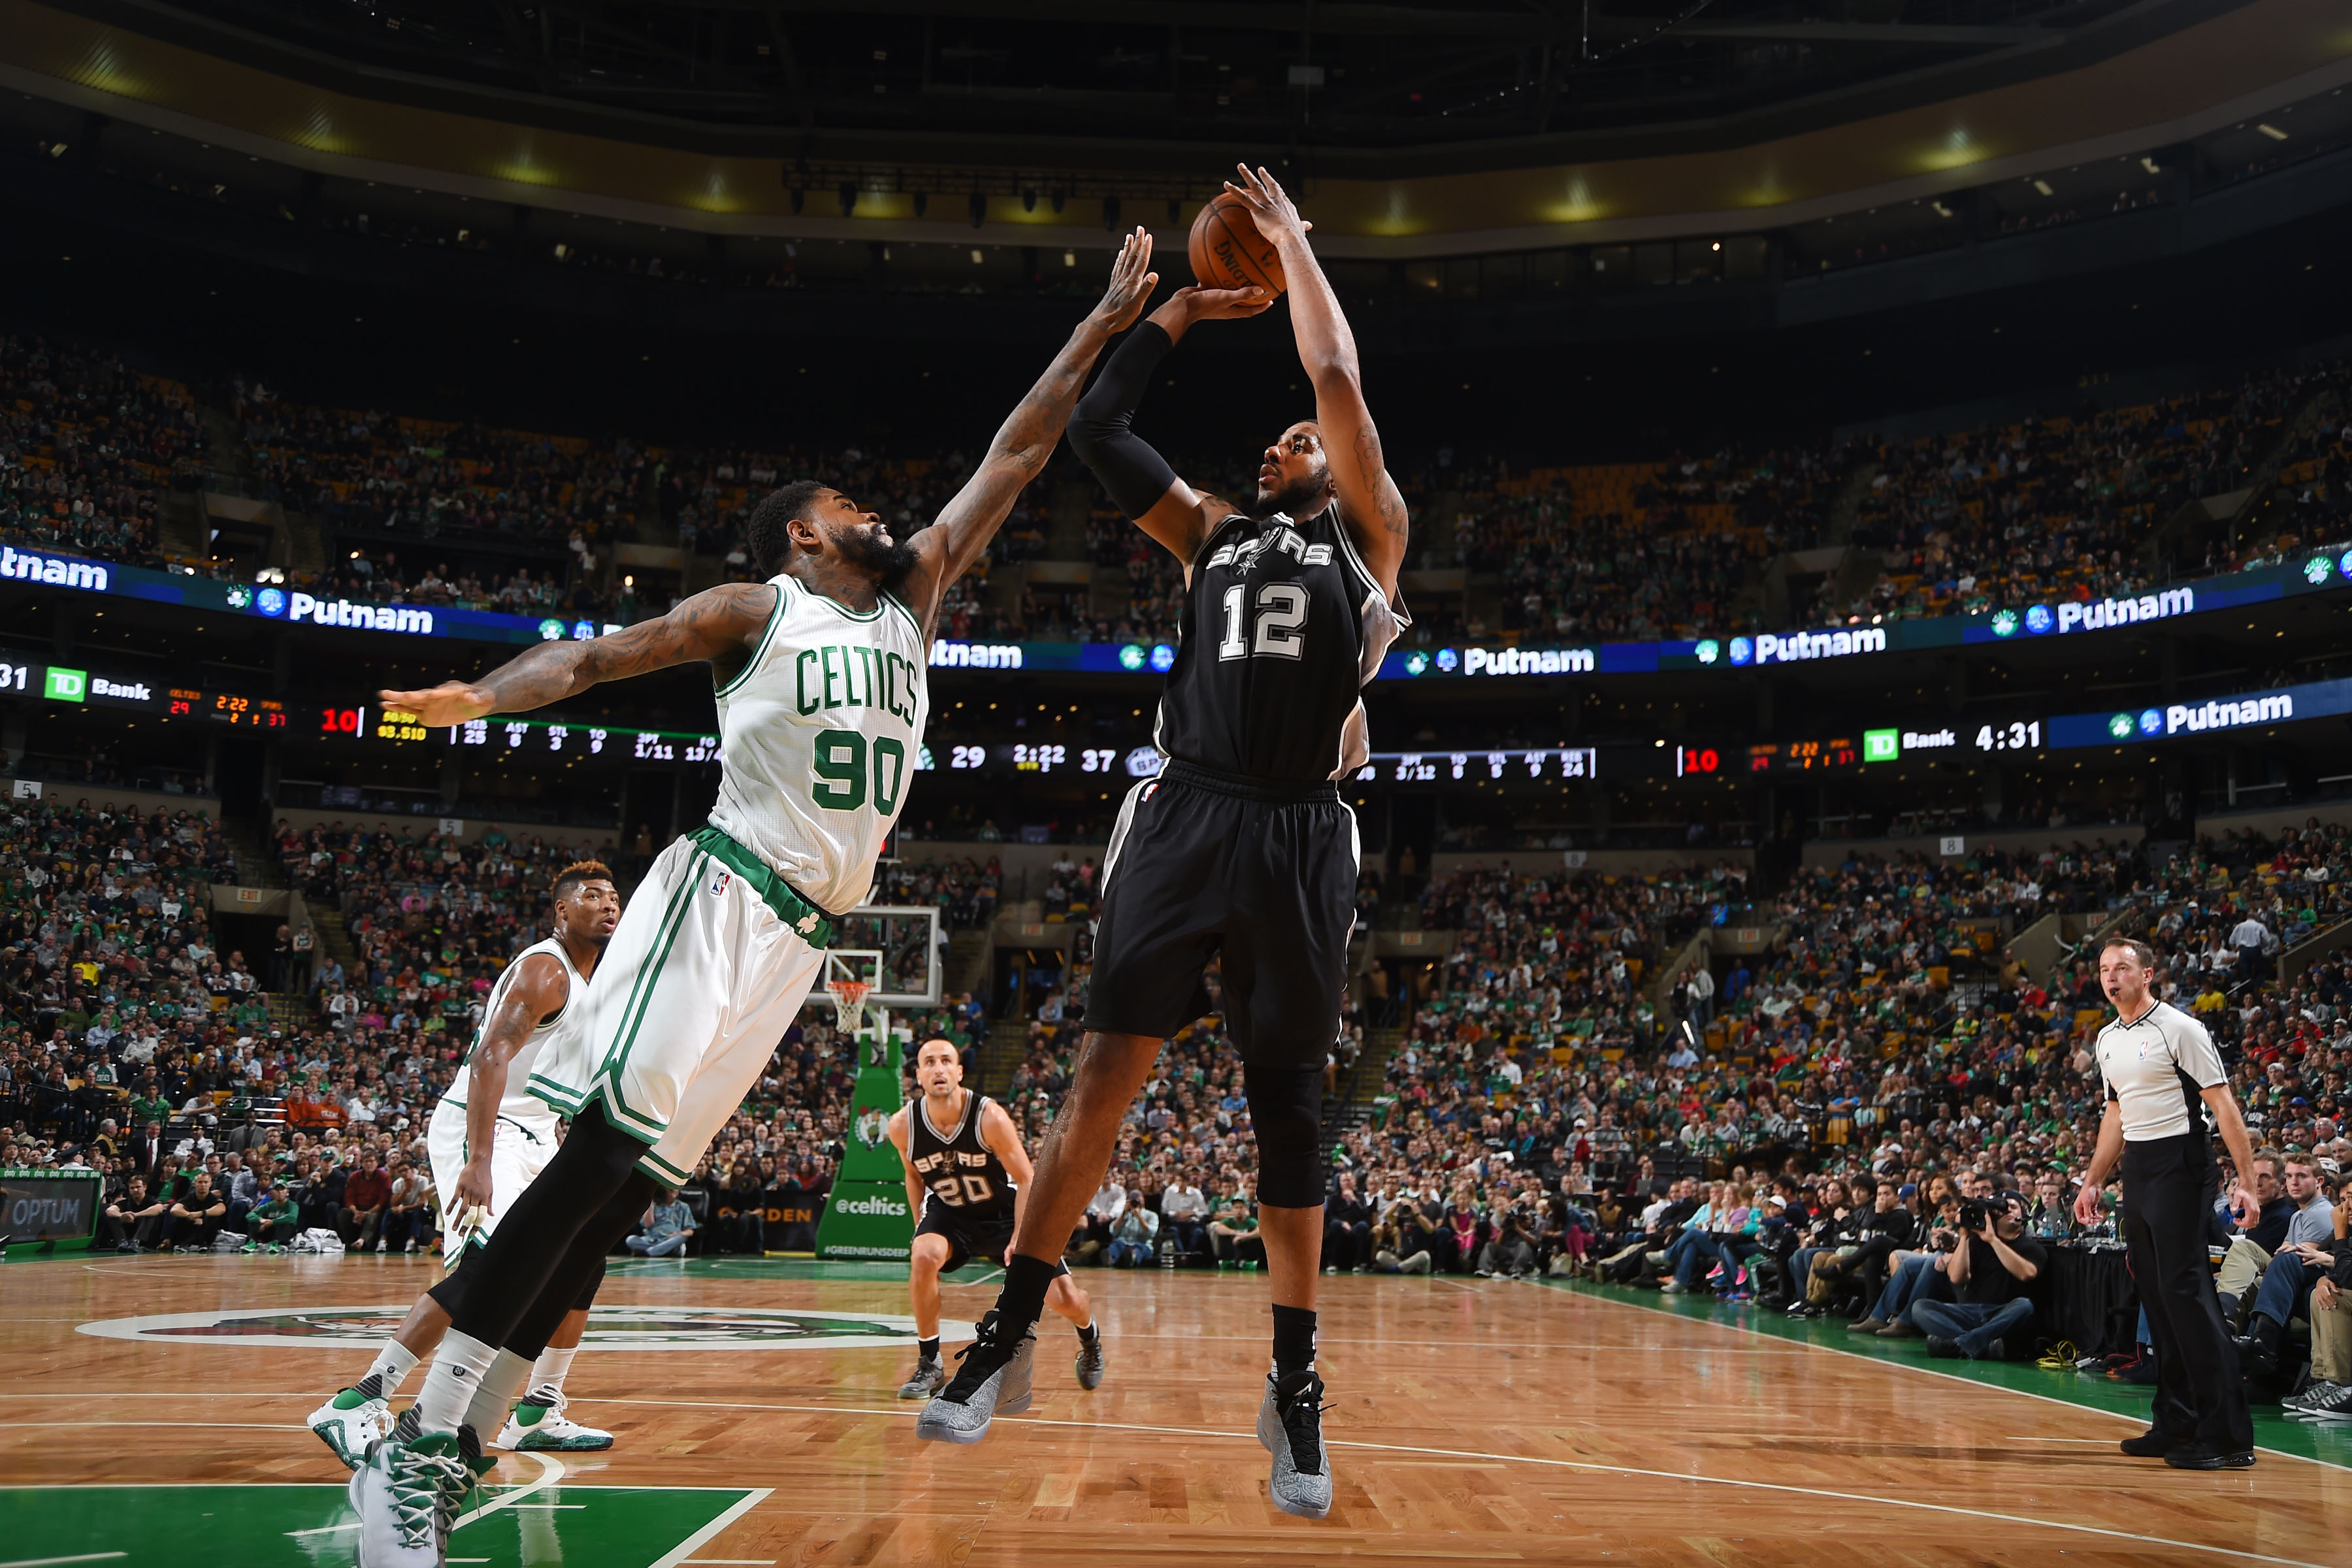 BOSTON, MA - NOVEMBER 1: LaMarcus Aldridge #12 of the San Antonio Spurs shoots the ball against the Boston Celtics during the game on November 1, 2015 at the TD Garden in Boston, Massachusetts.  (Photo by Brian Babineau/NBAE via Getty Images)